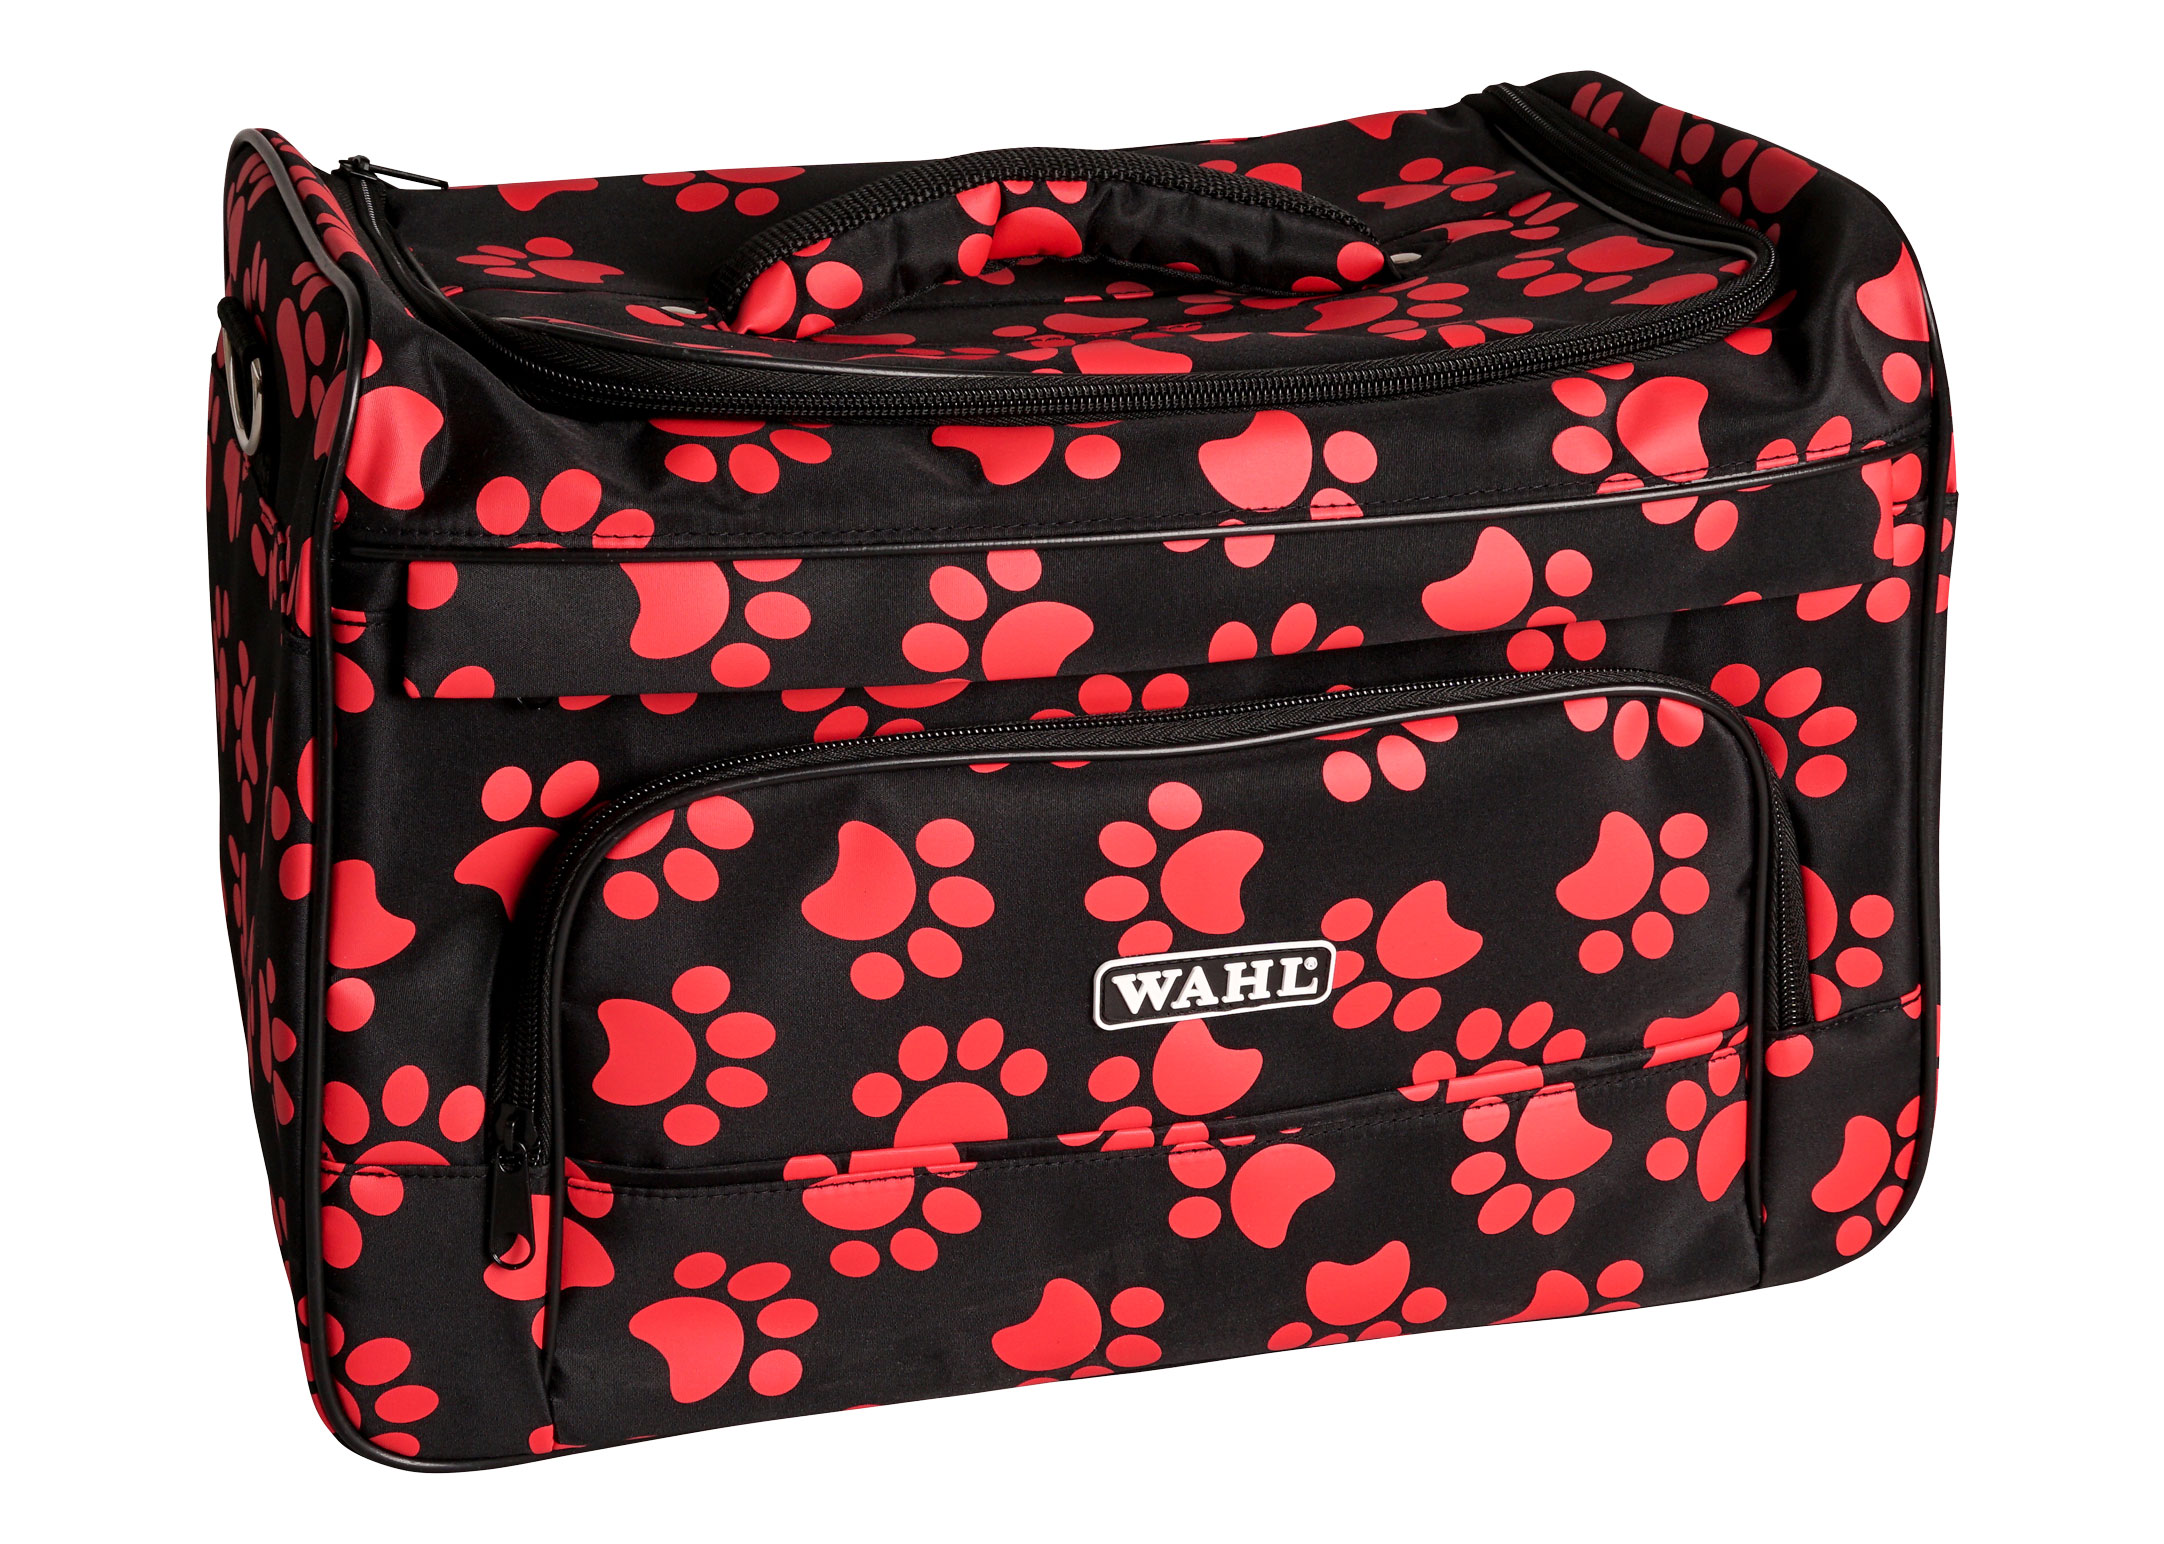 Wahl Groomers Pawprint Bag Black-Red Paws Travel Case